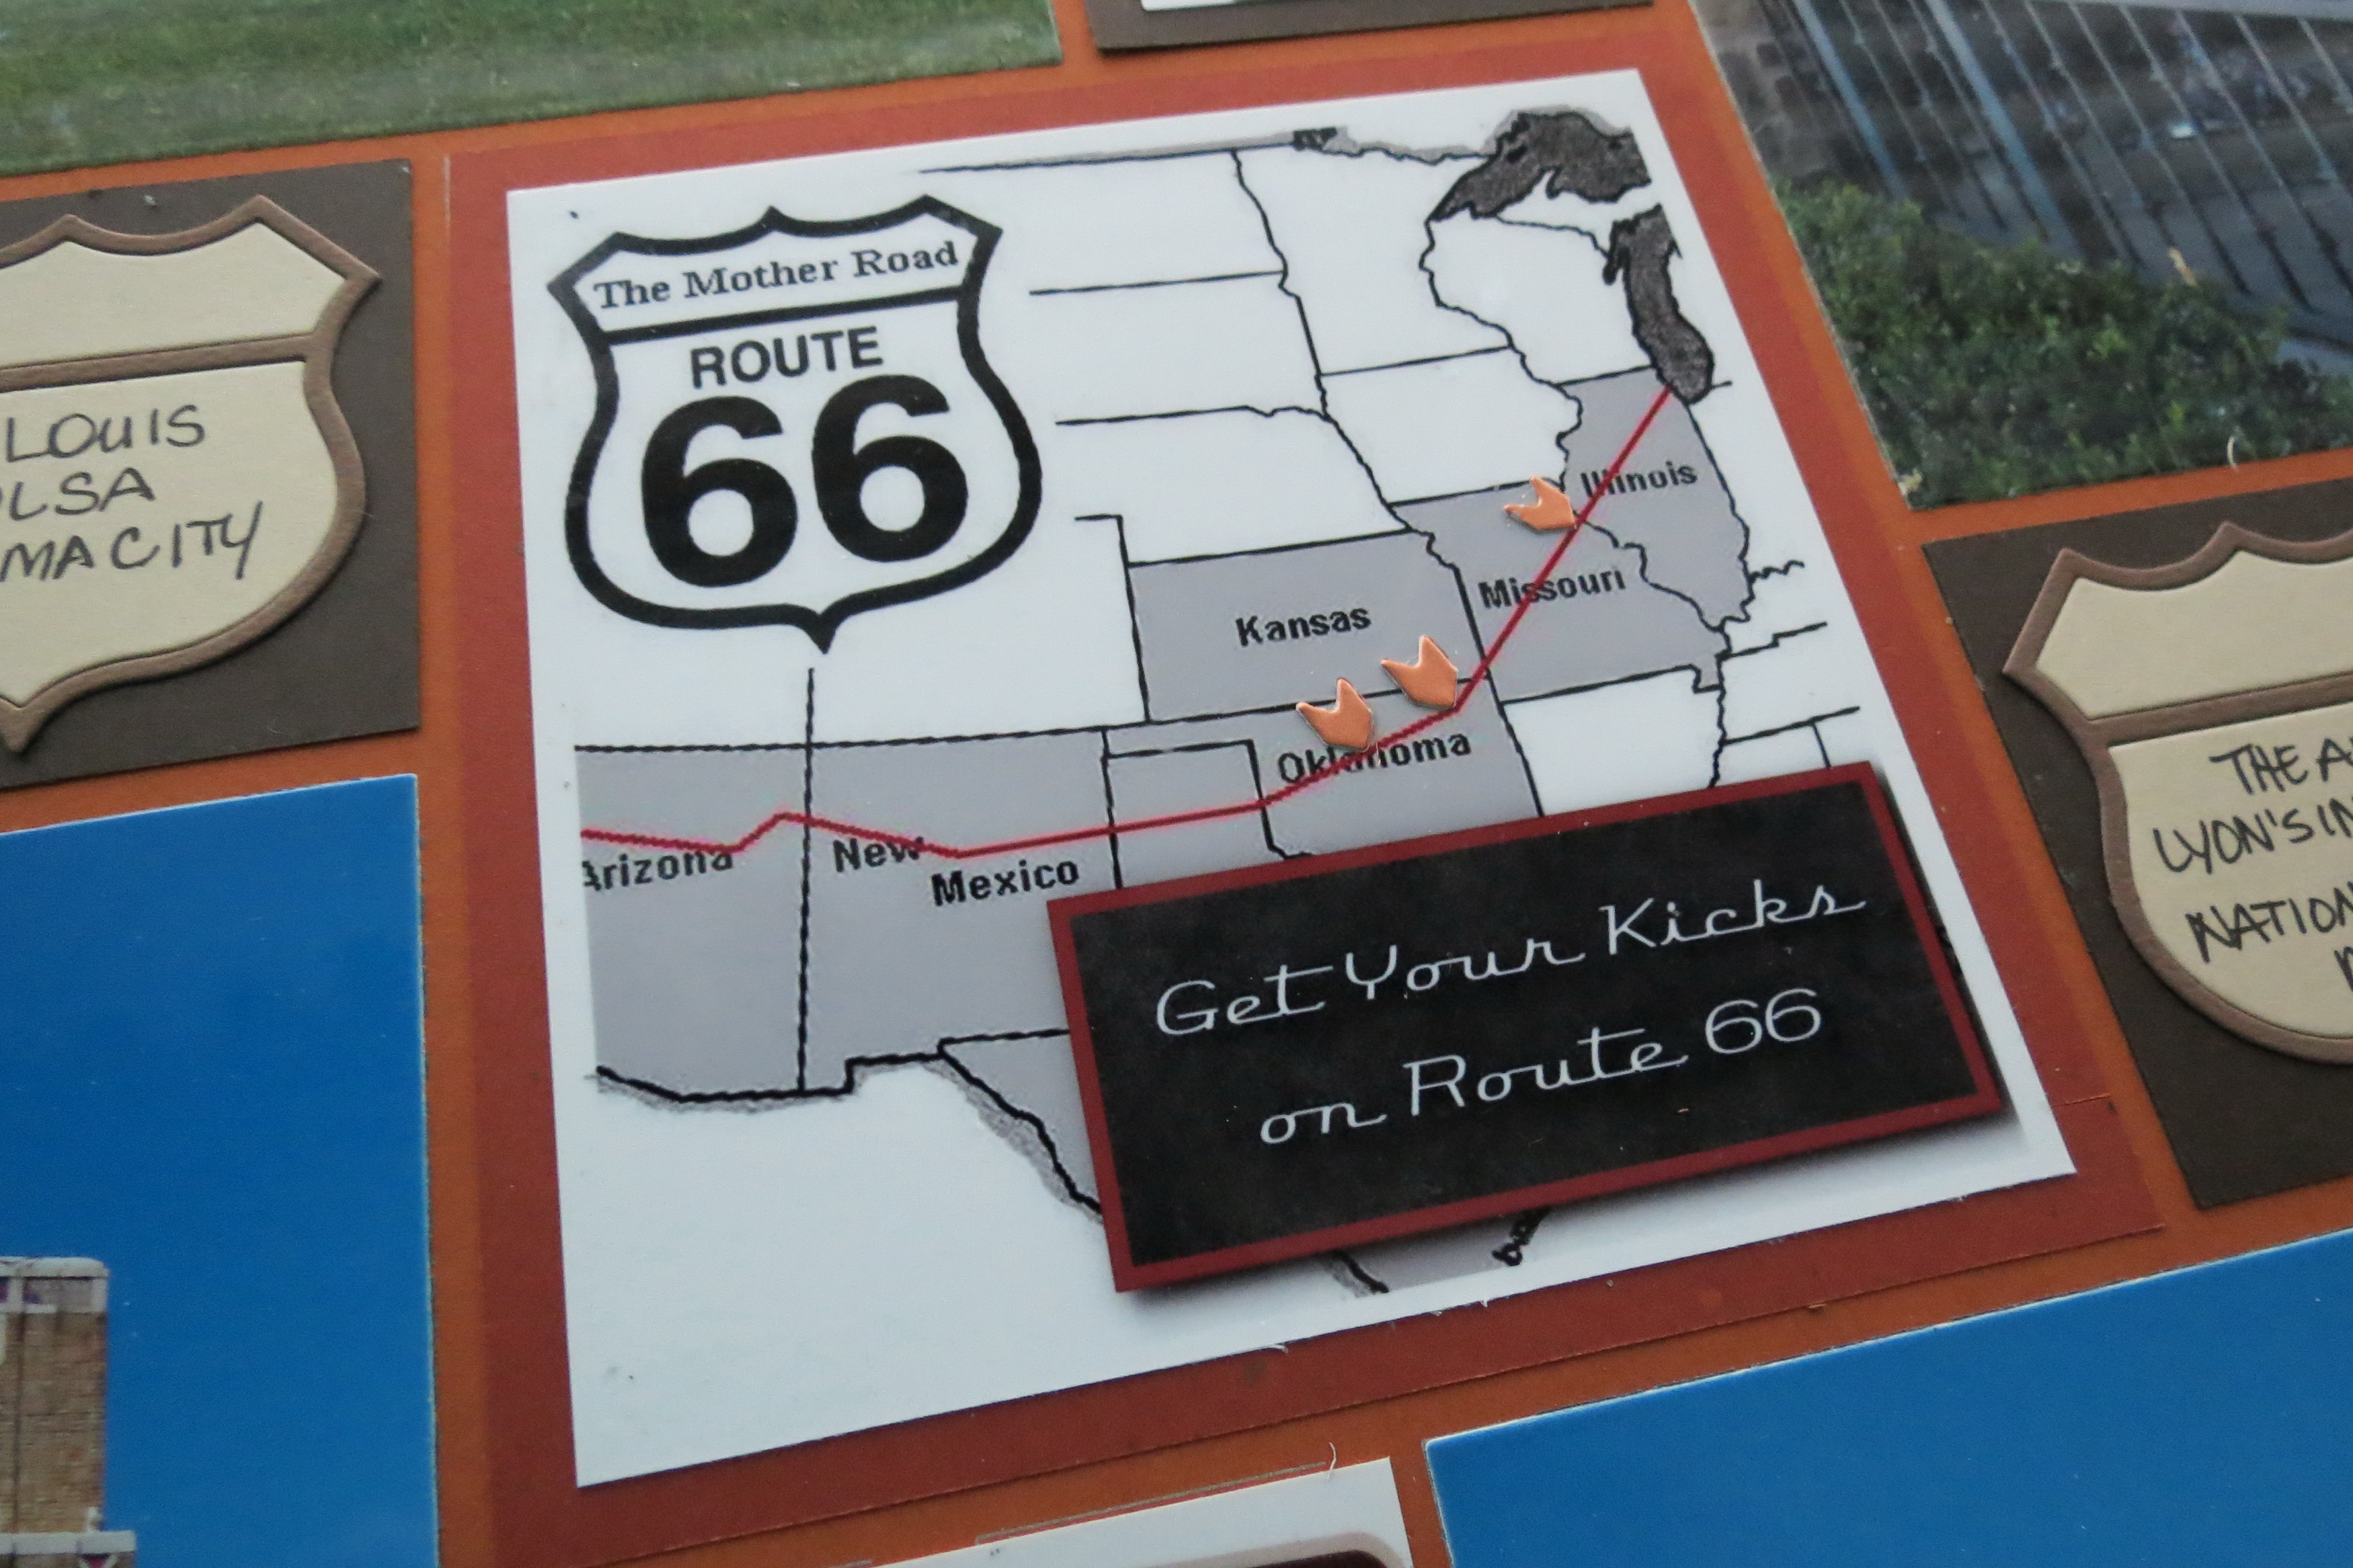 Get Your Kicks on Route 66 - Mosaic Moments Page Layout System Map Of Rt Signs on